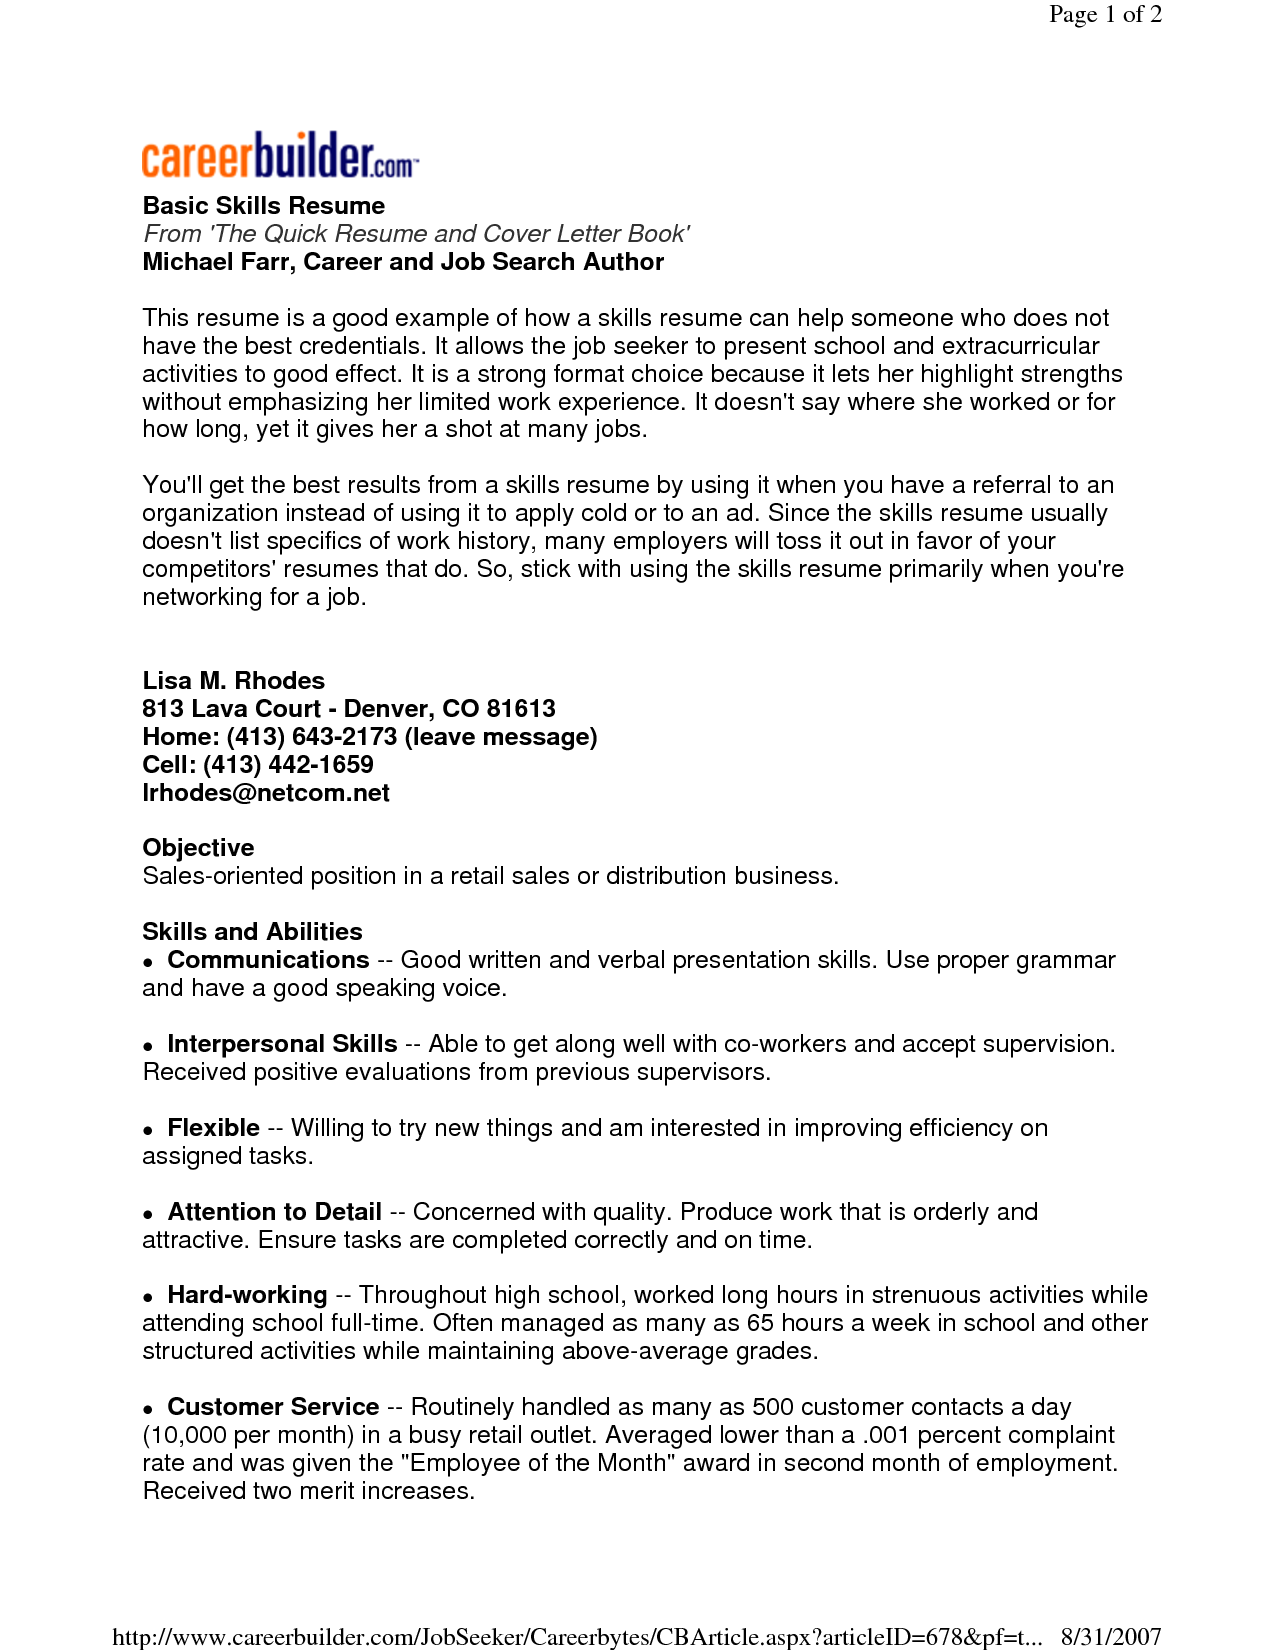 find here the sample resume that best fits your profile in order to get ahead the